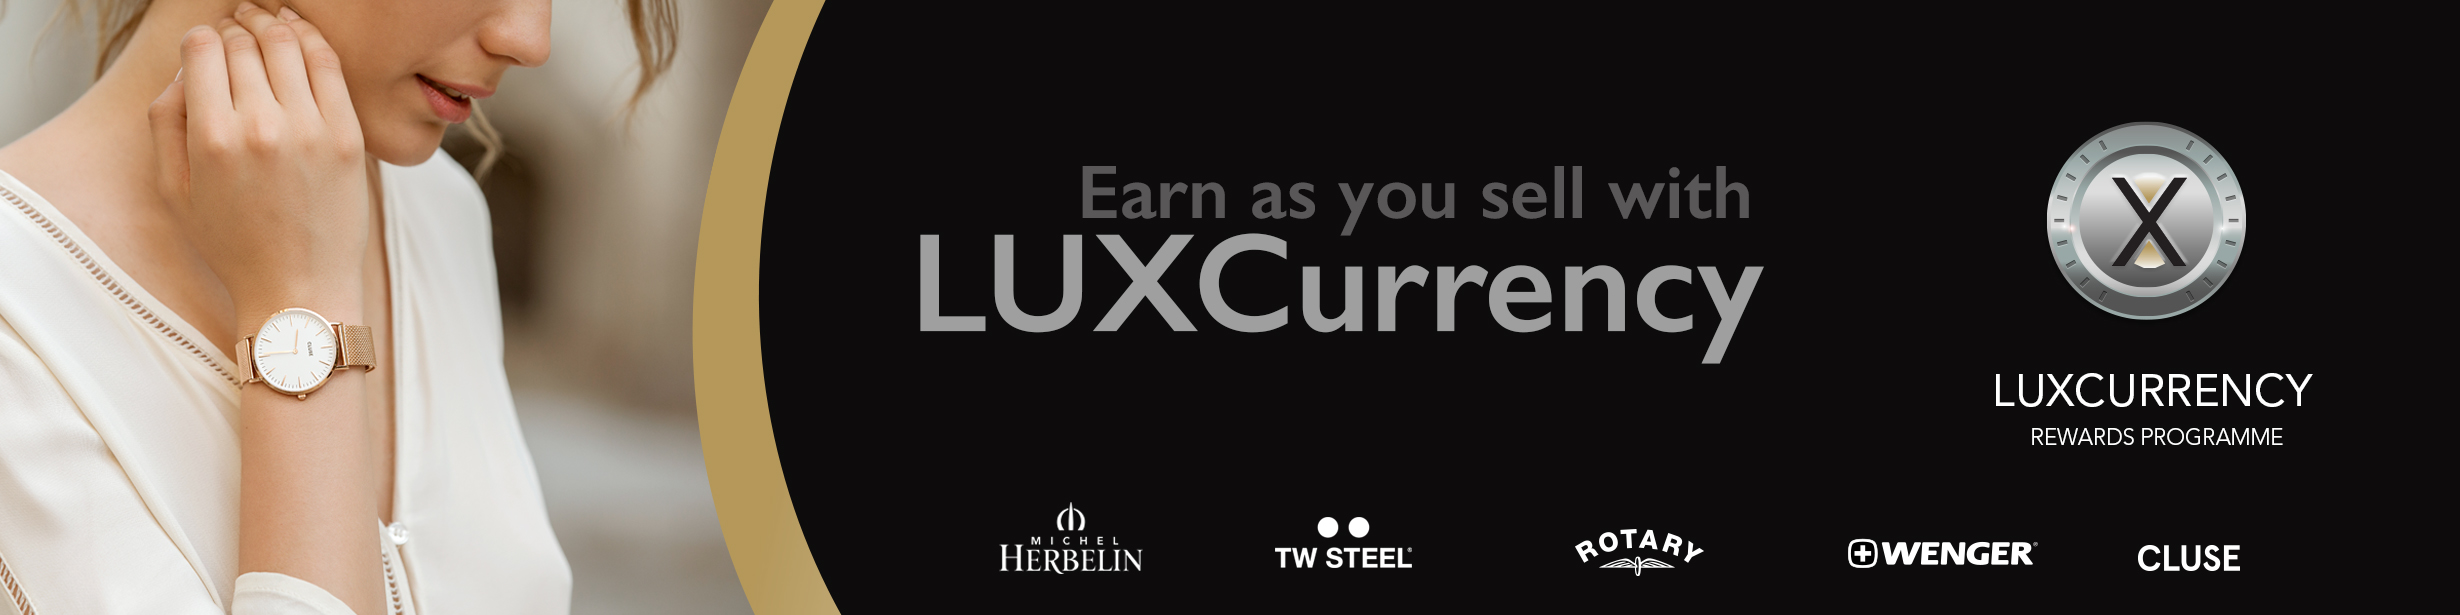 LUXCurrency